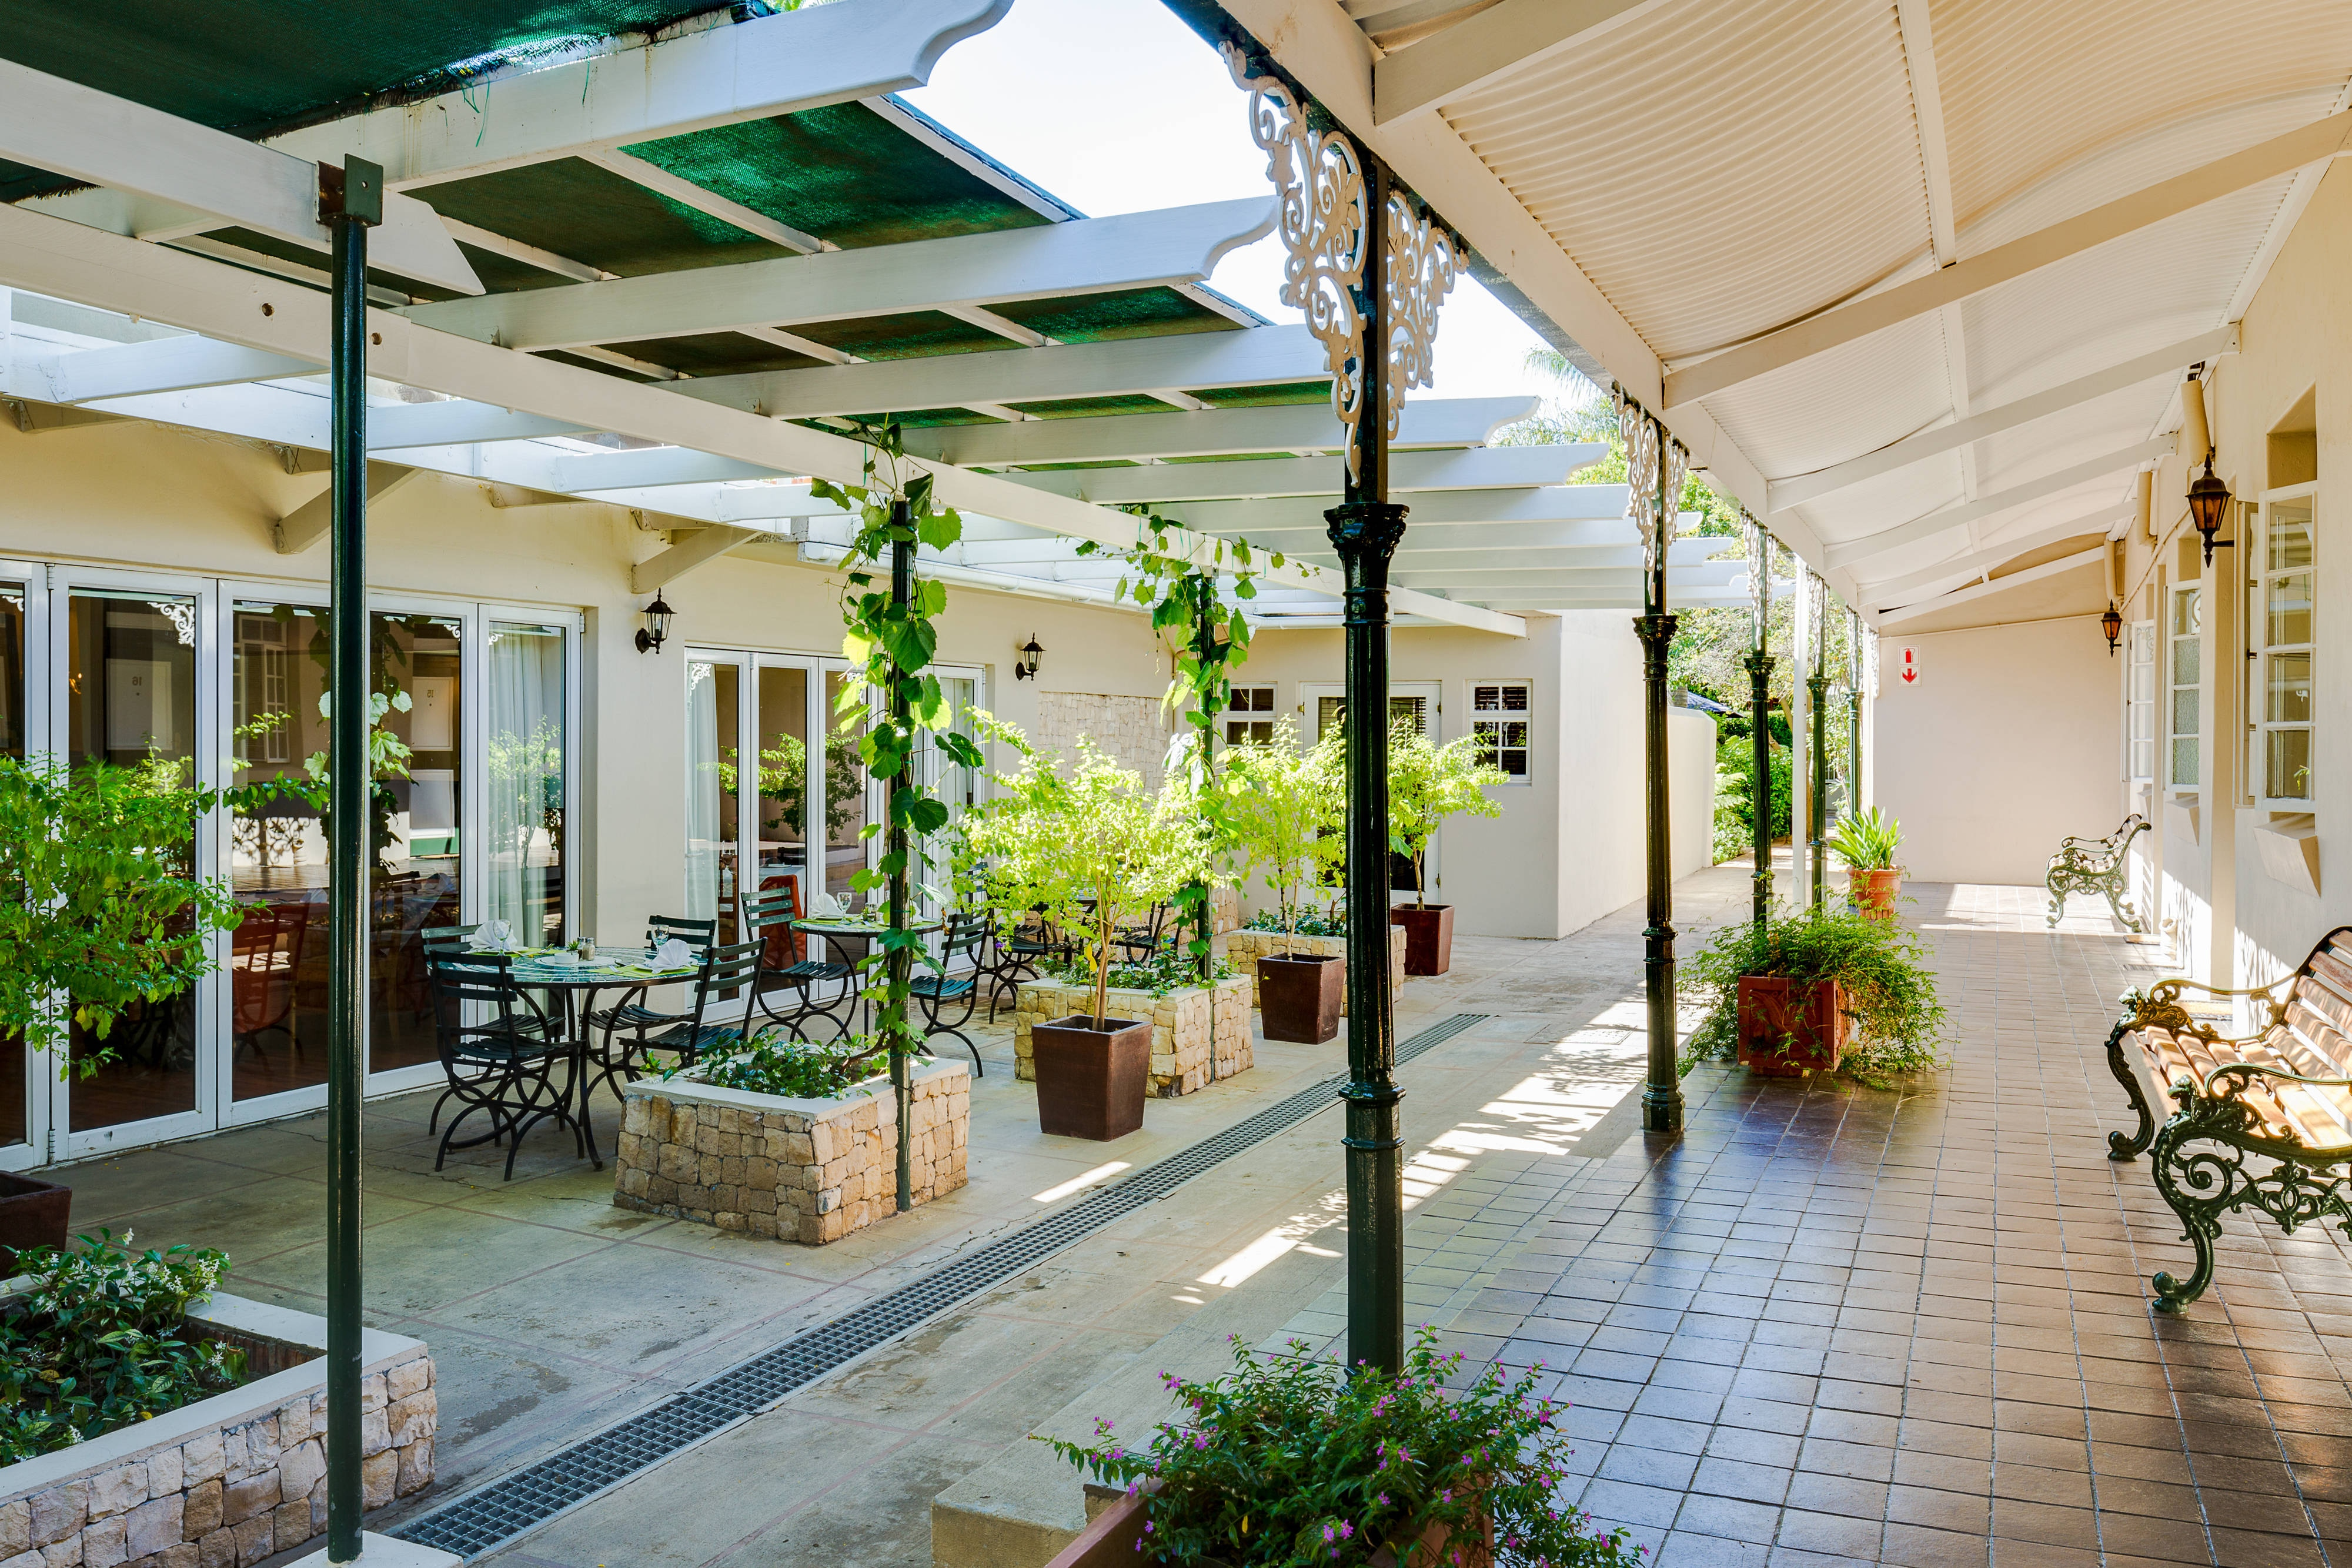 Protea Hotel Dorpshuis & Spa courtyard